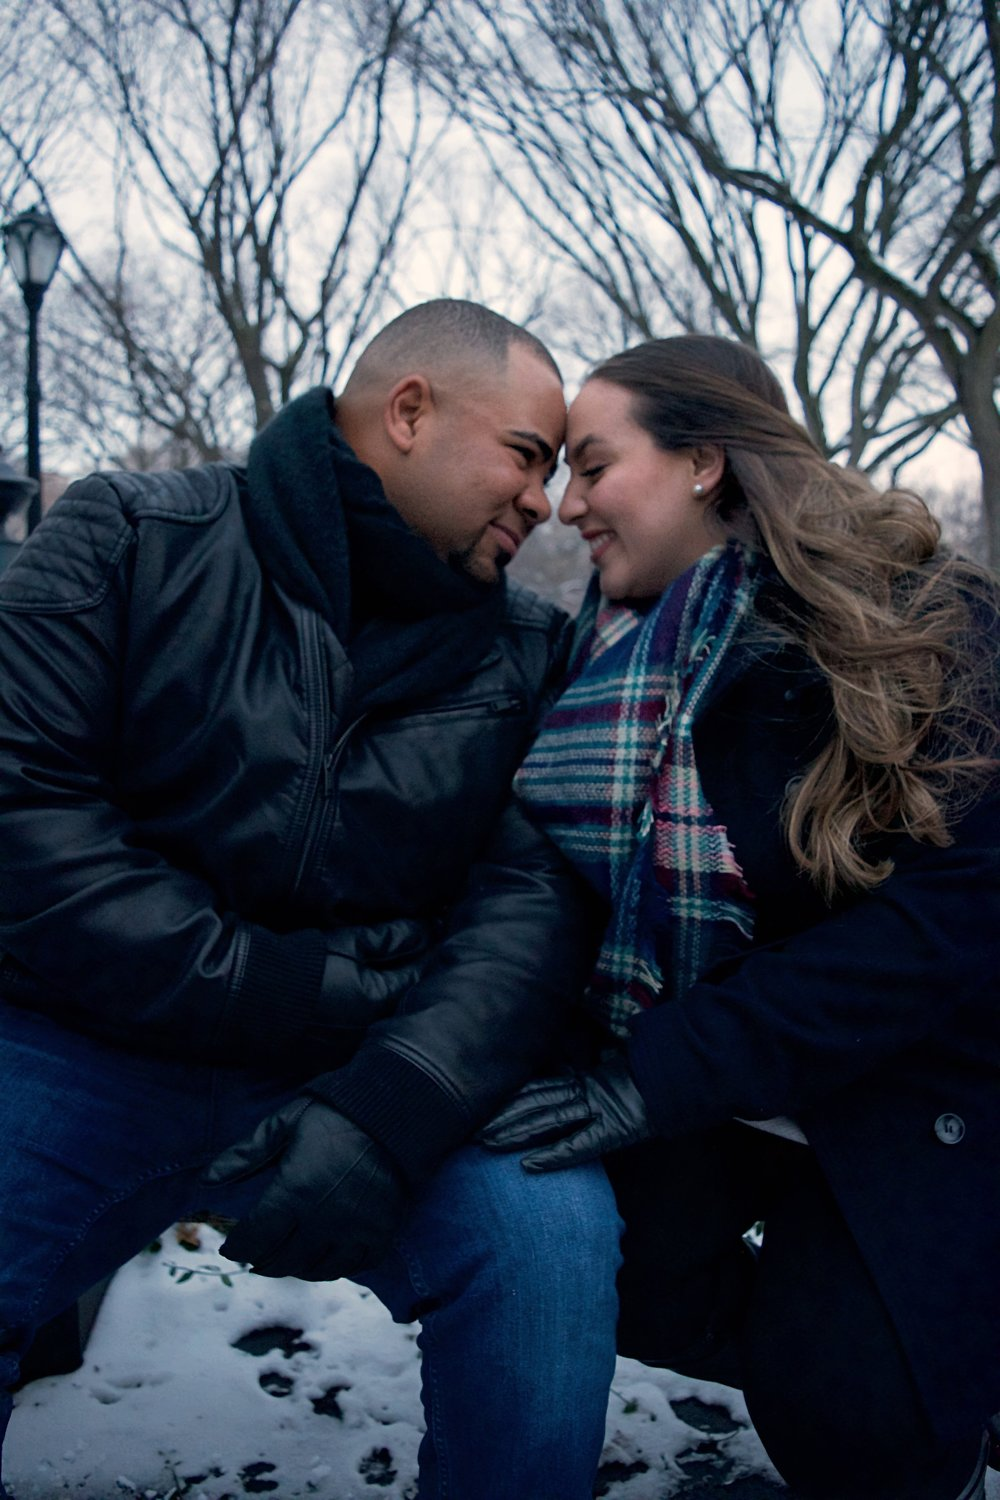 Married Couples Winter Engagement Session Photography Central Park Gapstow Bridge Literary Walk